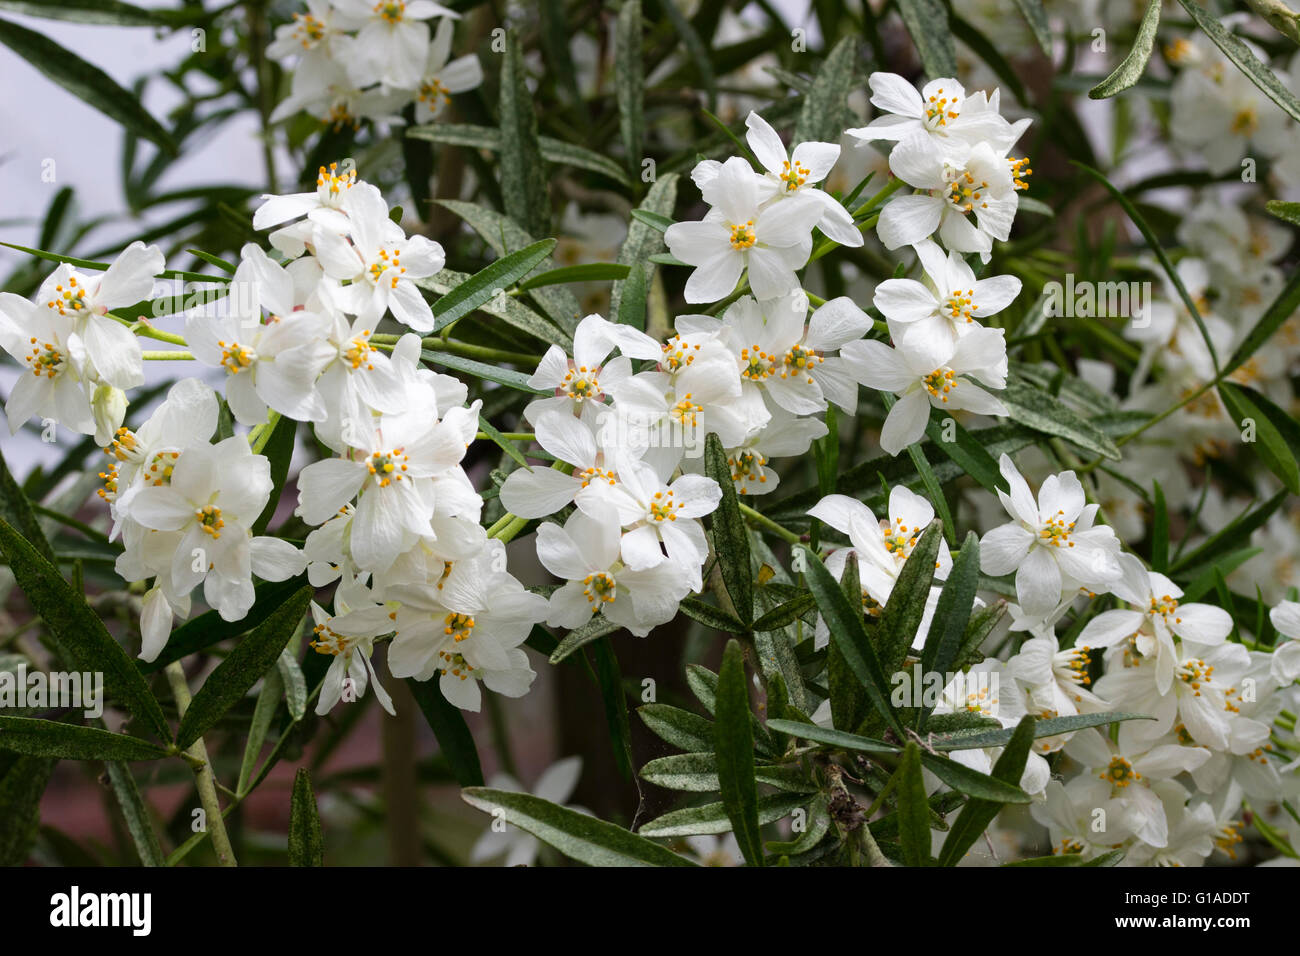 Scented White Flowers Of The Evergreen Hybrid Late Spring